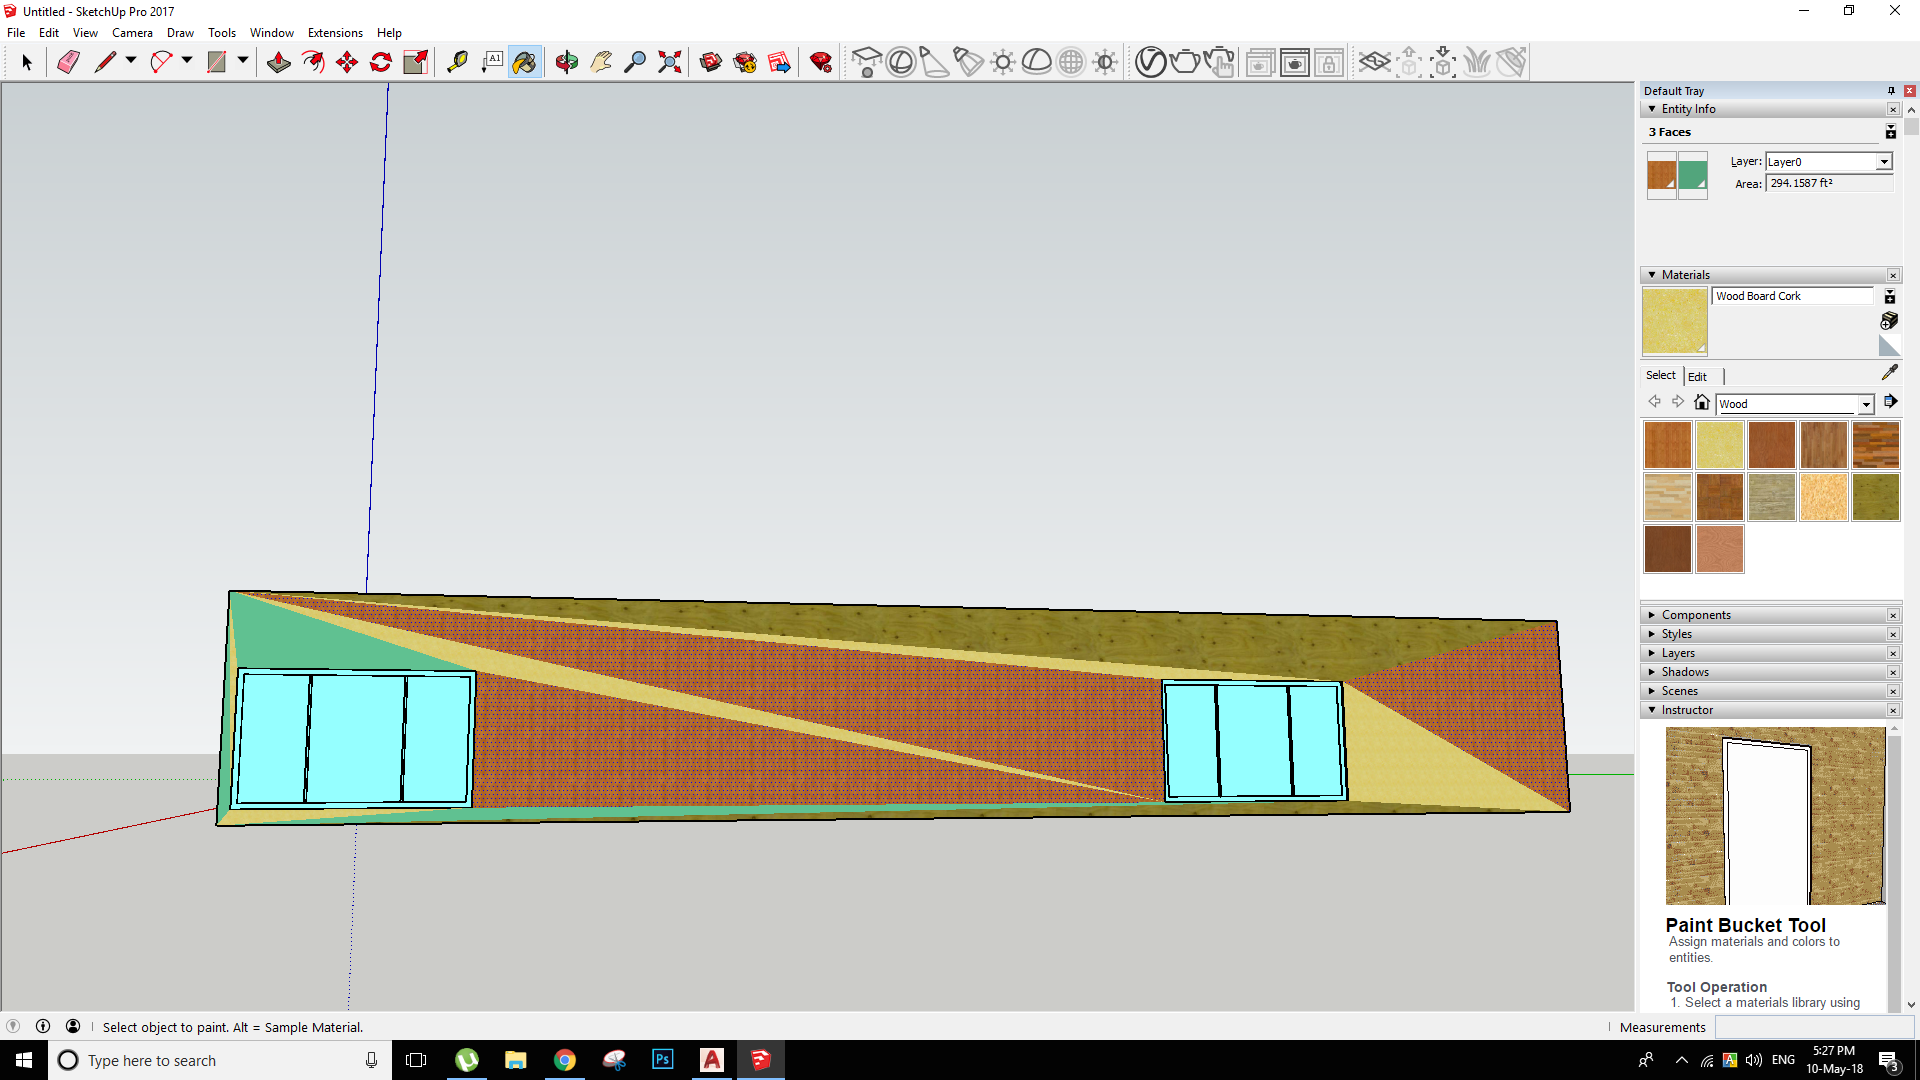 Autodesk Sketchup